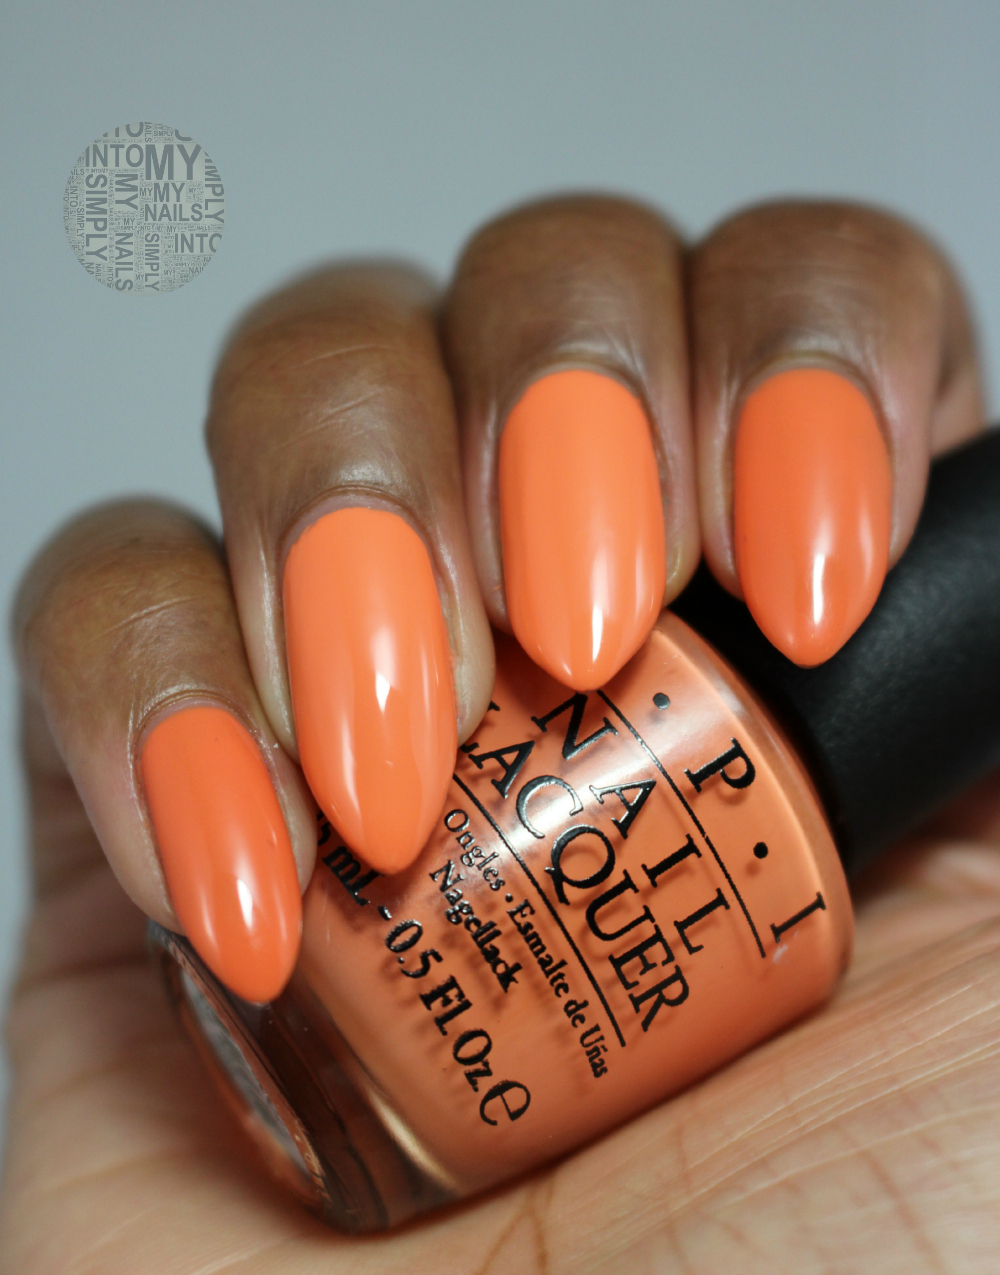 OPI Gelcolor Where Did Suzi\'s Man-go? | Simply Into My NAILS